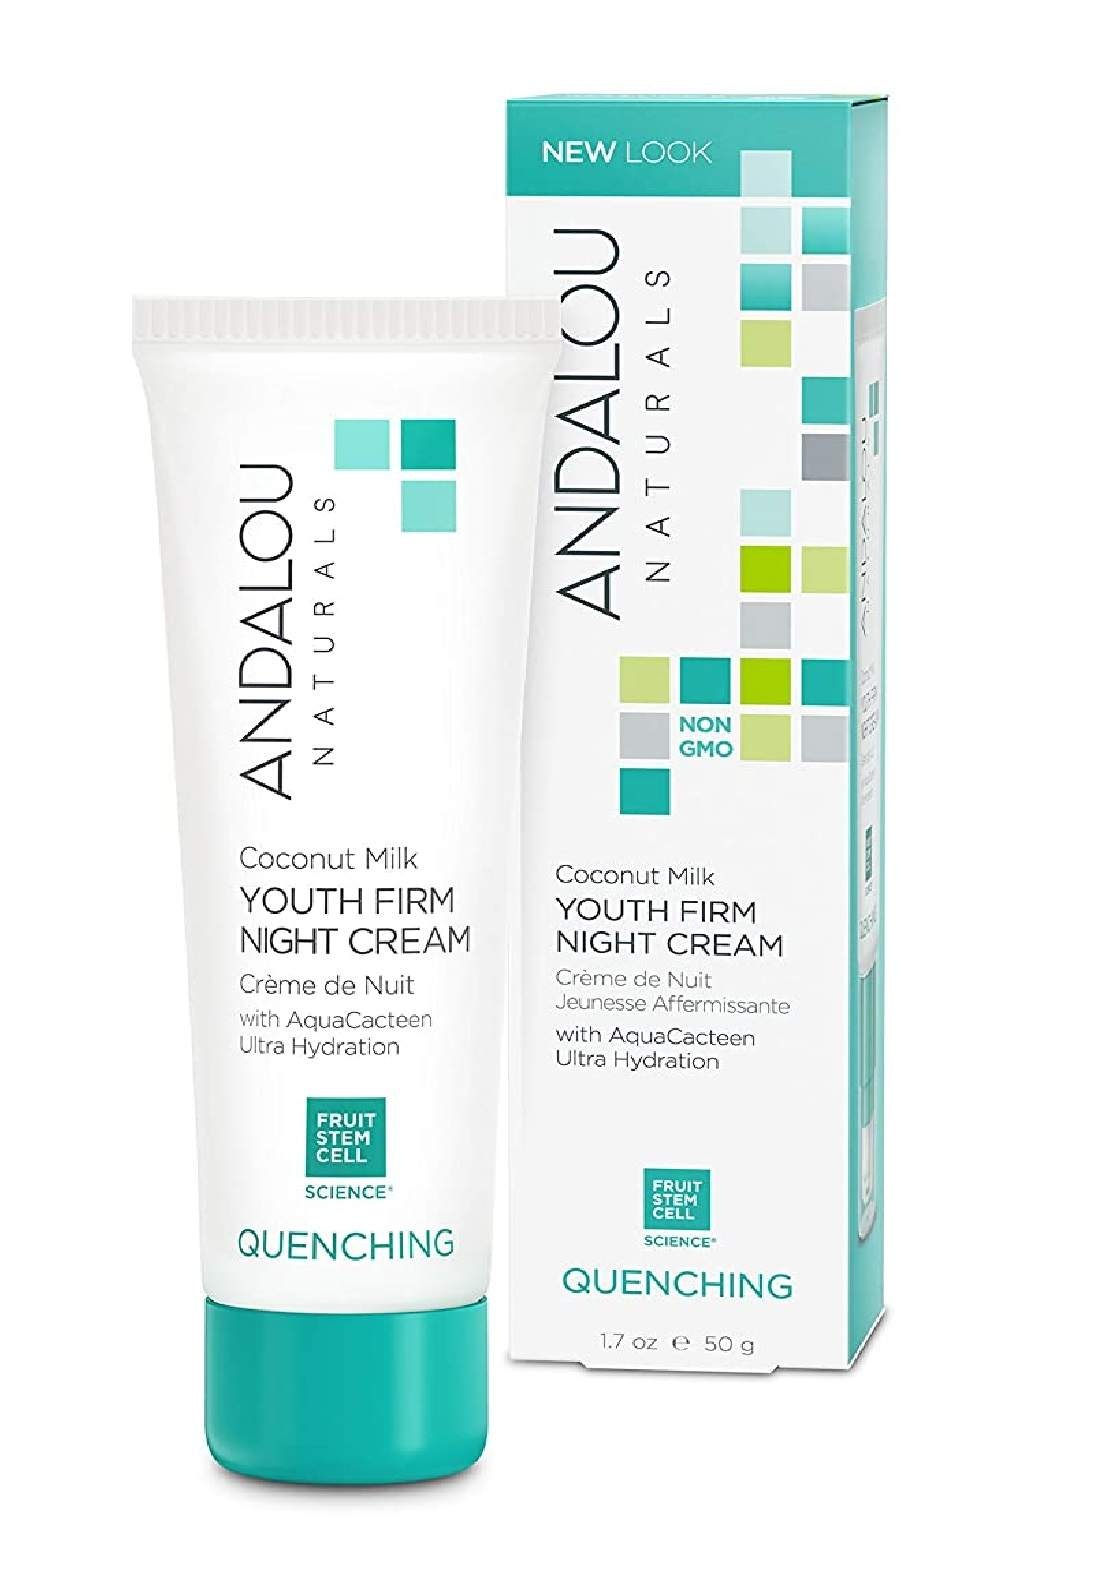 Andalou 0595 Naturals Quenching Coconut Milk Youth Firm Night Cream كريم ليلي